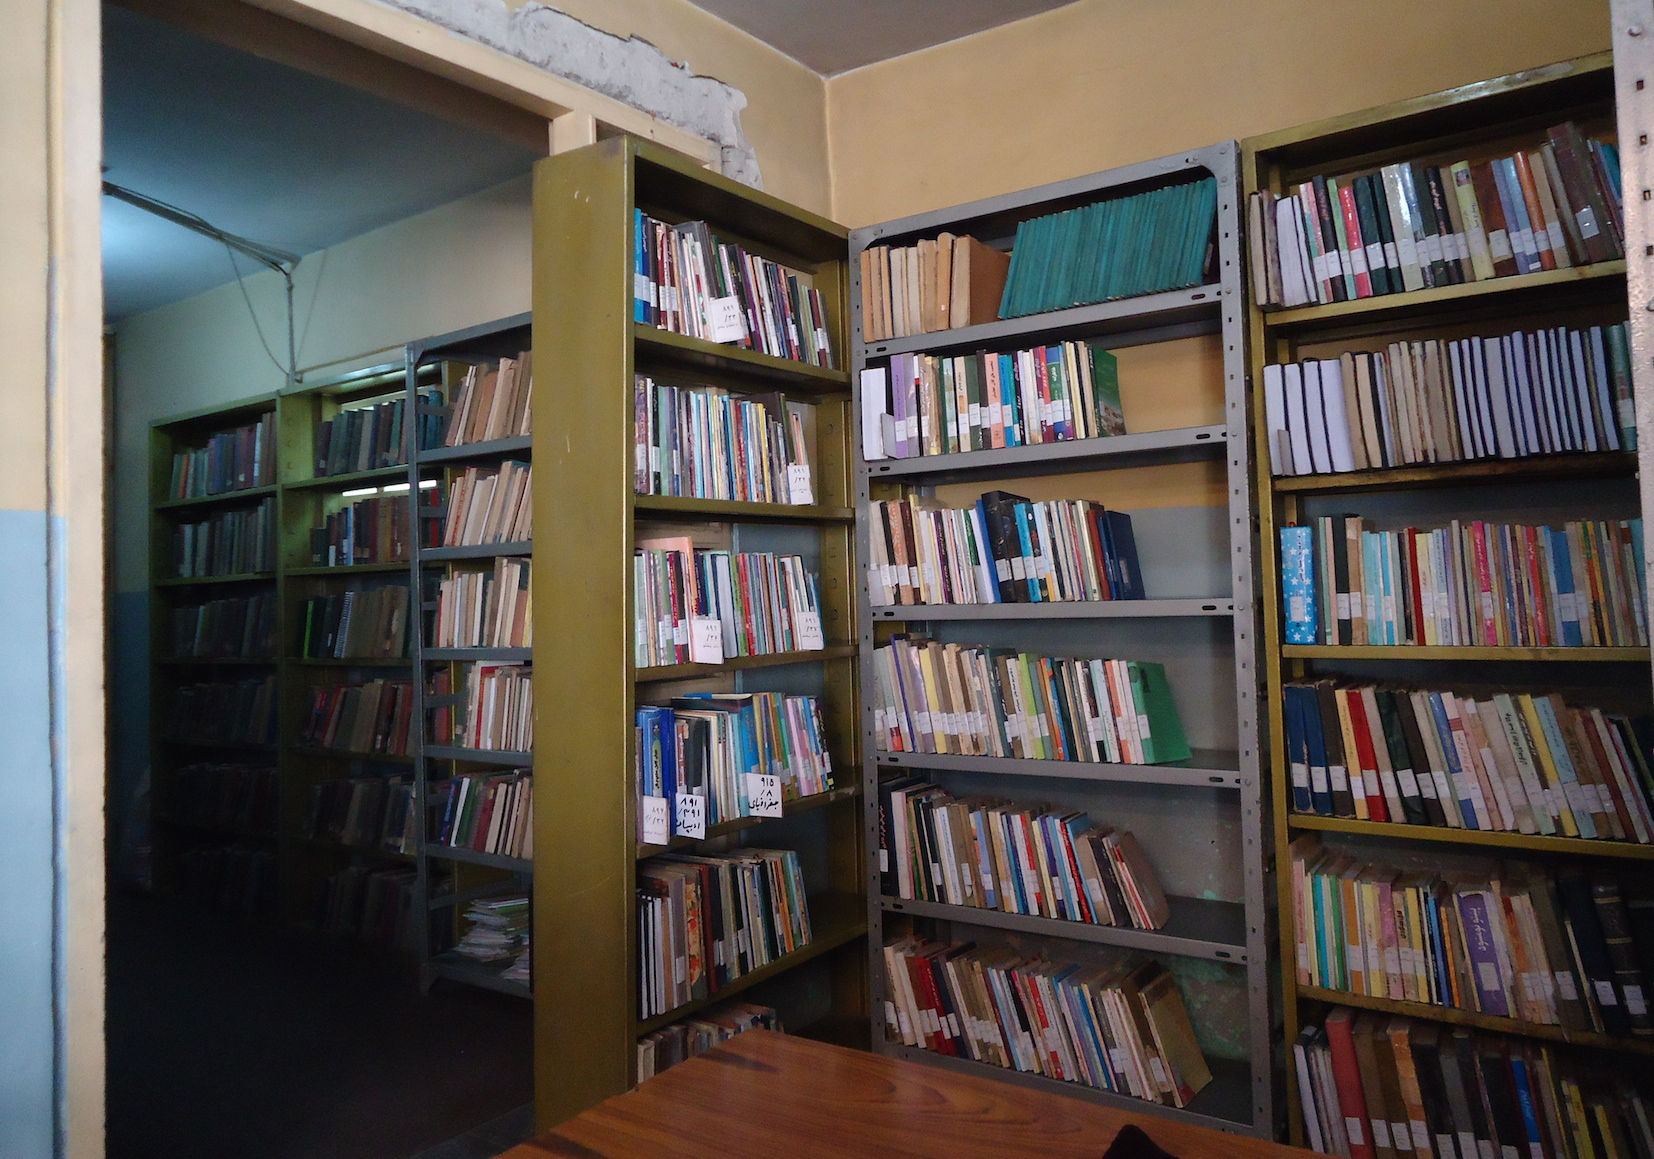 Library in Kabul. Photo: Qayoom Suroush